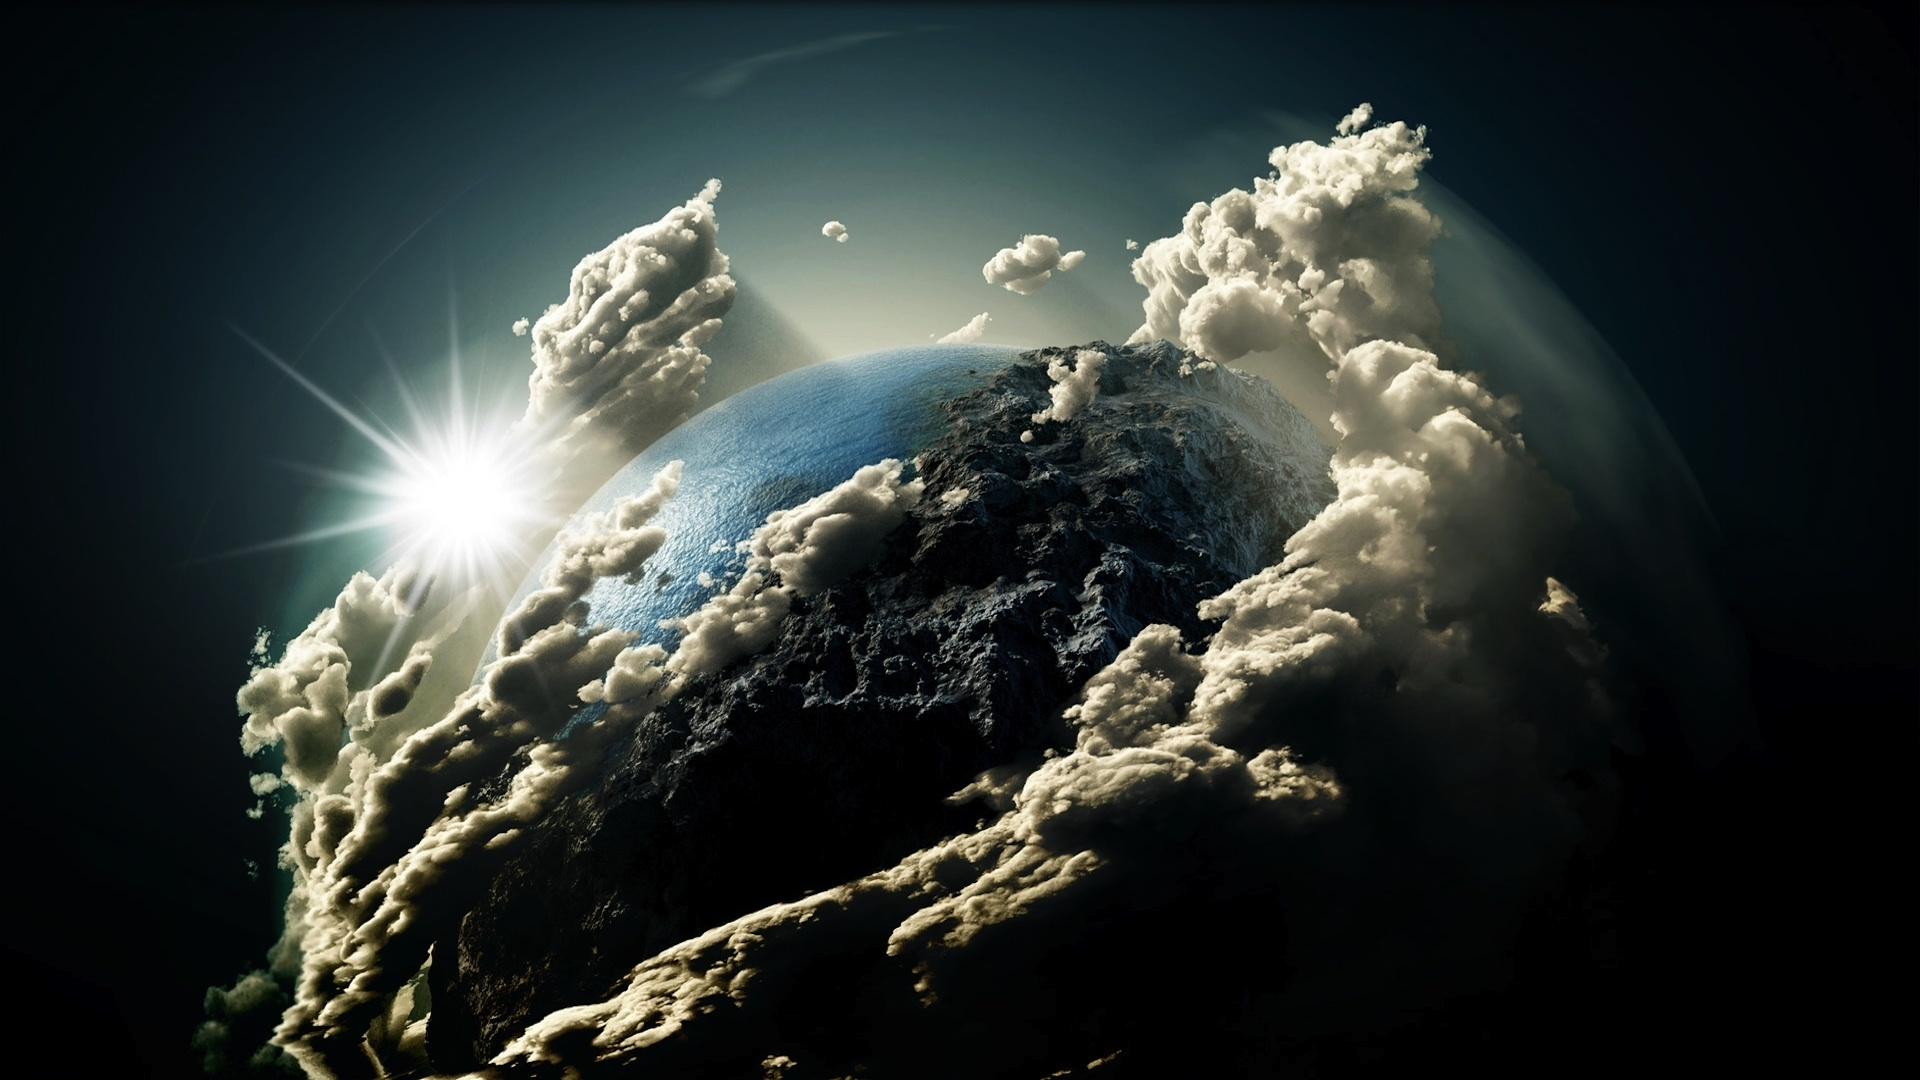 Fantasy Earth Clouds Wallpapers HD Desktop and Mobile Backgrounds 1920x1080